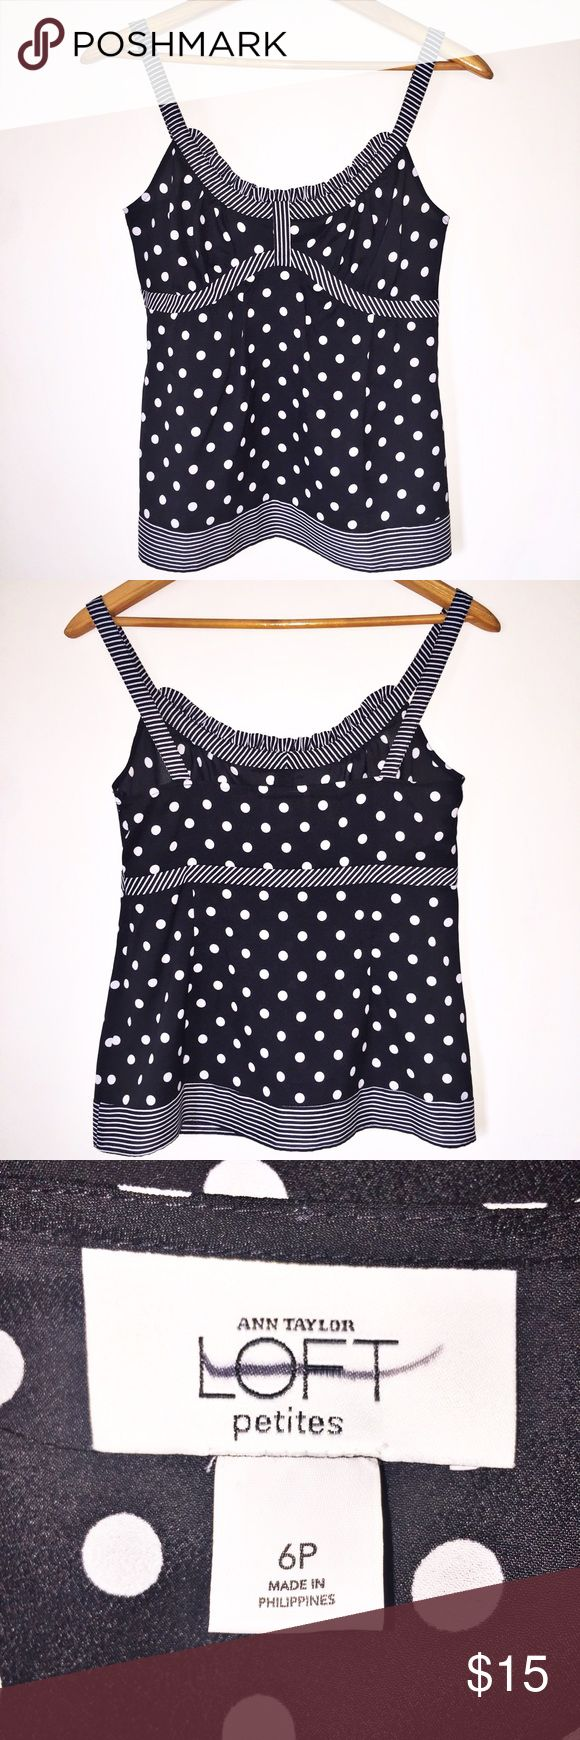 """Ann Taylor Loft Petites Sleeveless Blouse/Tank Like new condition, worn less than a handful of times. Very chic, very stylish, very professional! You could definitely go from work to a night out on the town in this top! Black with white polka dots and stripes. Empire waist. Semi sheer, but you cannot see through it when wearing it. Measures 16"""" across chest. 15"""" across the empire waist. 23"""" long. Please don't hesitate to make an offer or to ask any questions. Smoke-free, pet free home. Same…"""